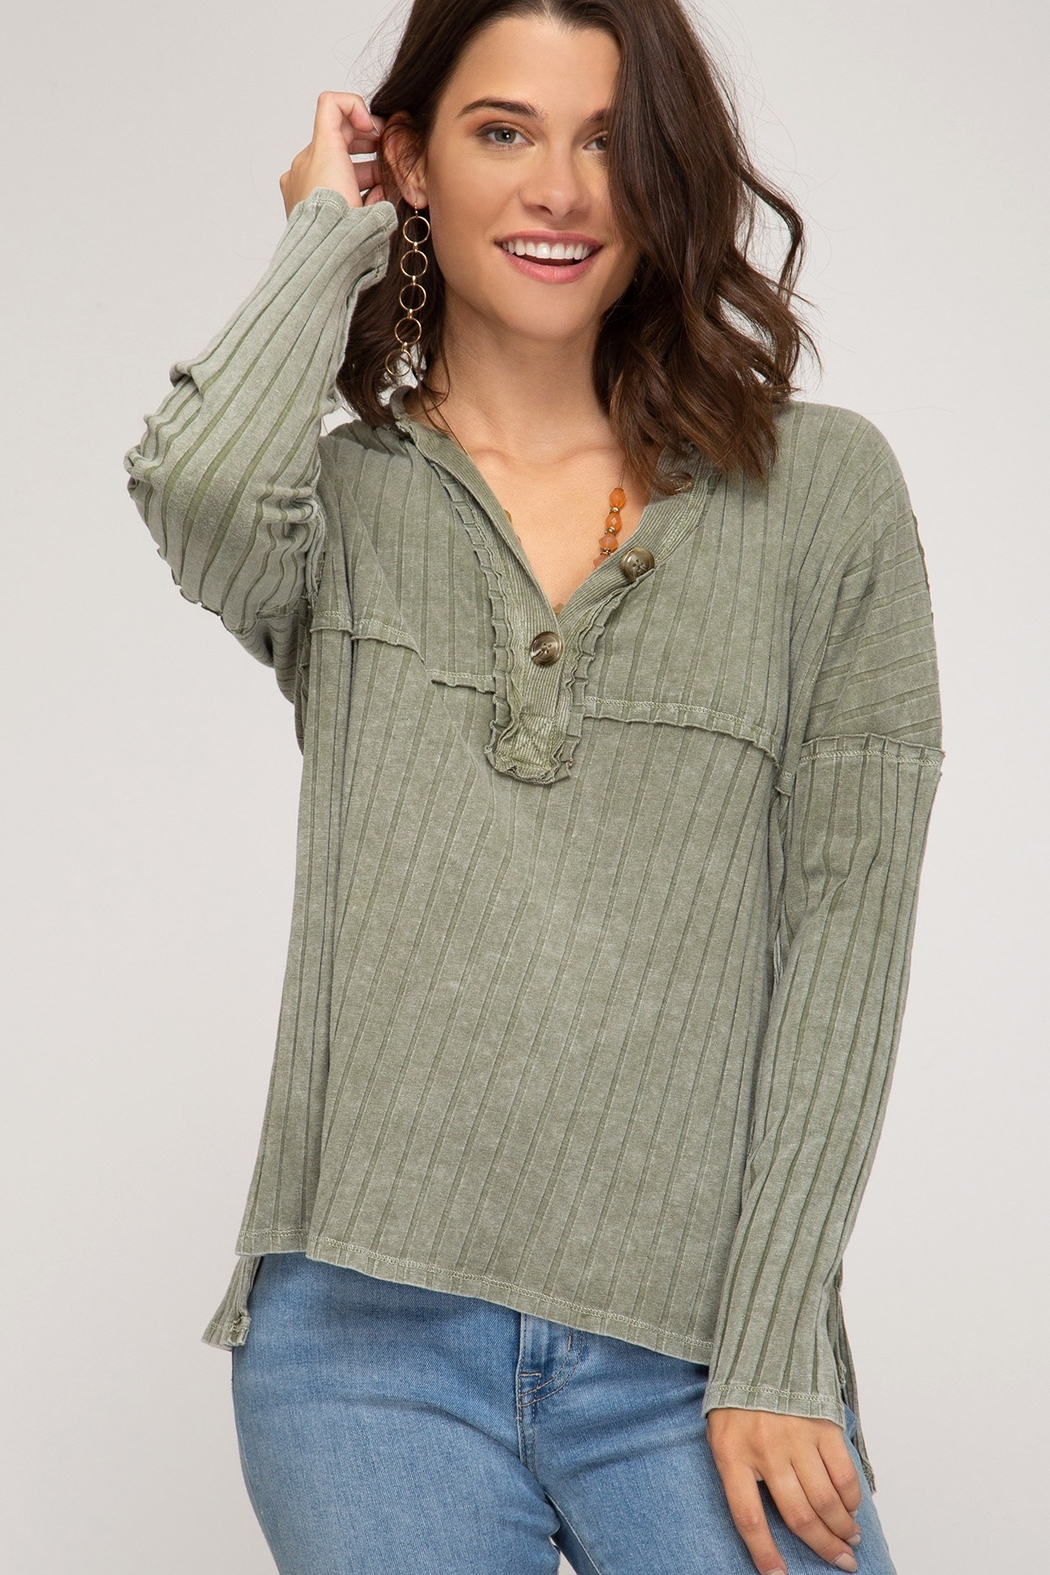 She and Sky LONG SLEEVE RIB KNIT TOP WITH FRONT BUTTON PLACKET DETAIL - Main Image